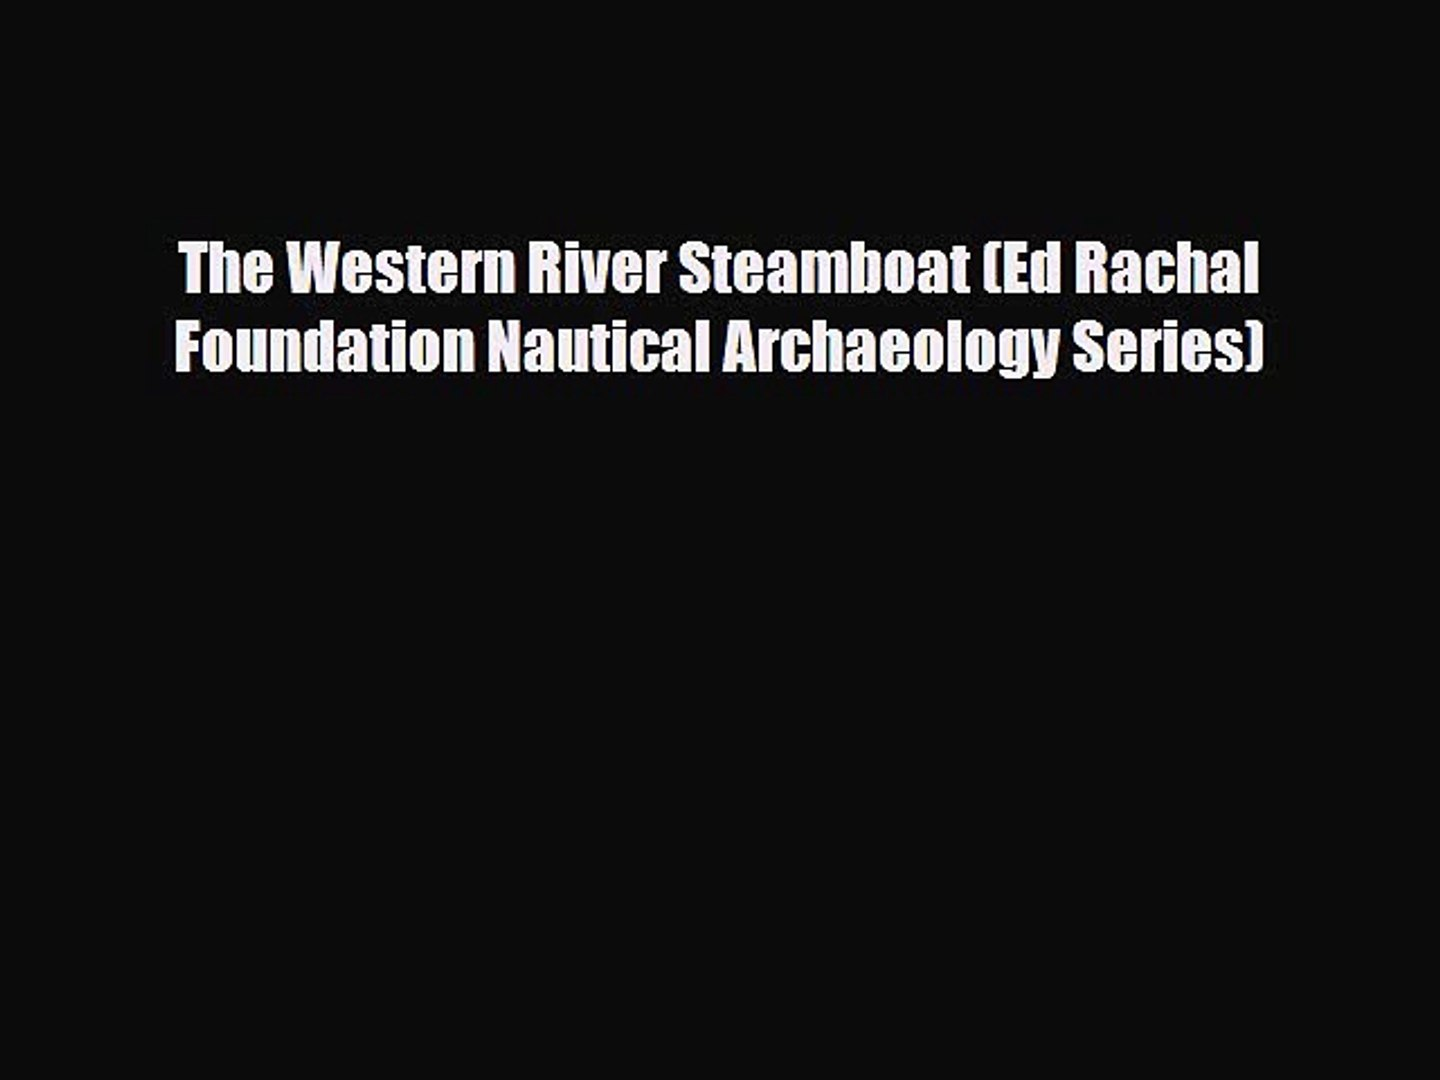 The Sea of Galilee Boat (Ed Rachal Foundation Nautical Archaeology Series)